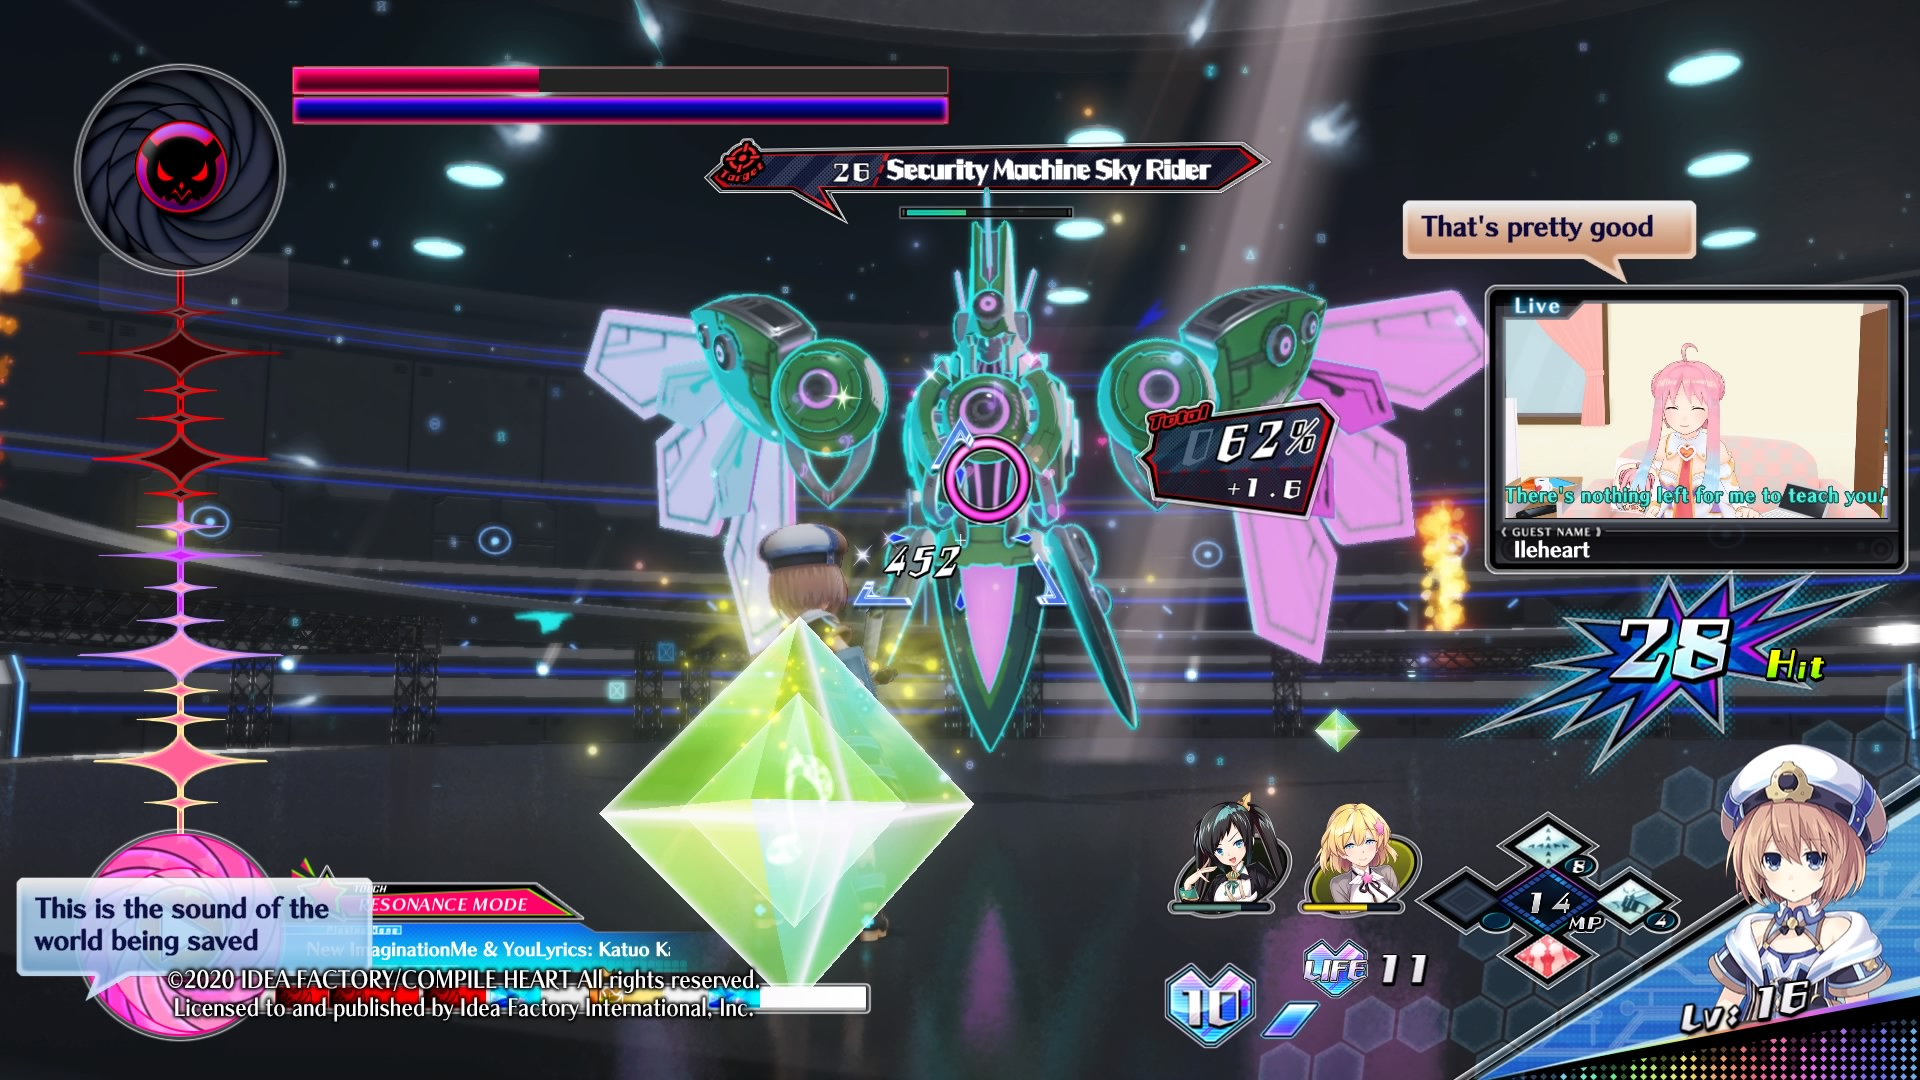 neptunia_virtual_stars_splash Neptunia Virtual Stars (VVVTune) Is a Disappointing Game That Only Appeals to Hardcore Neptunia Fans, If at All